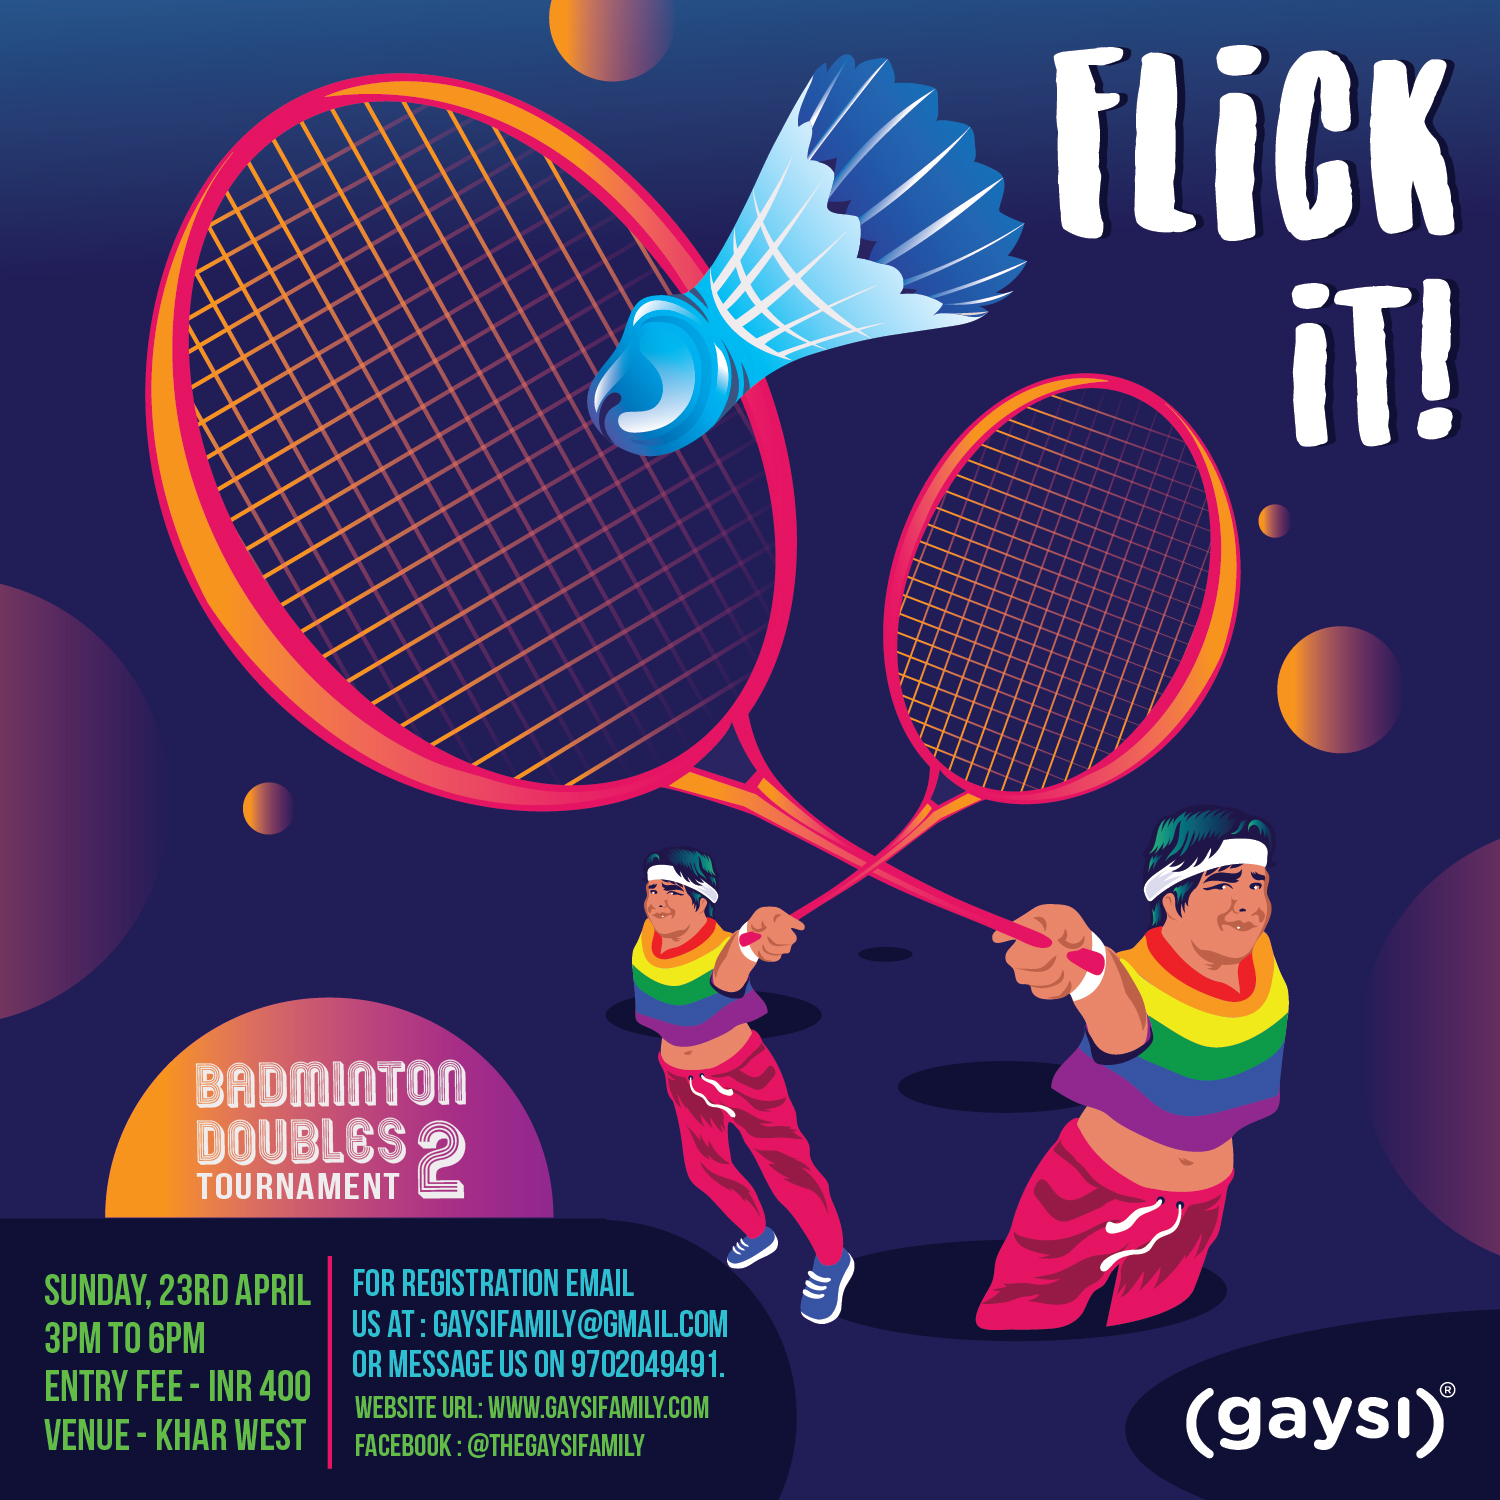 Flick It! With Gaysifamily's Badminton Tournament